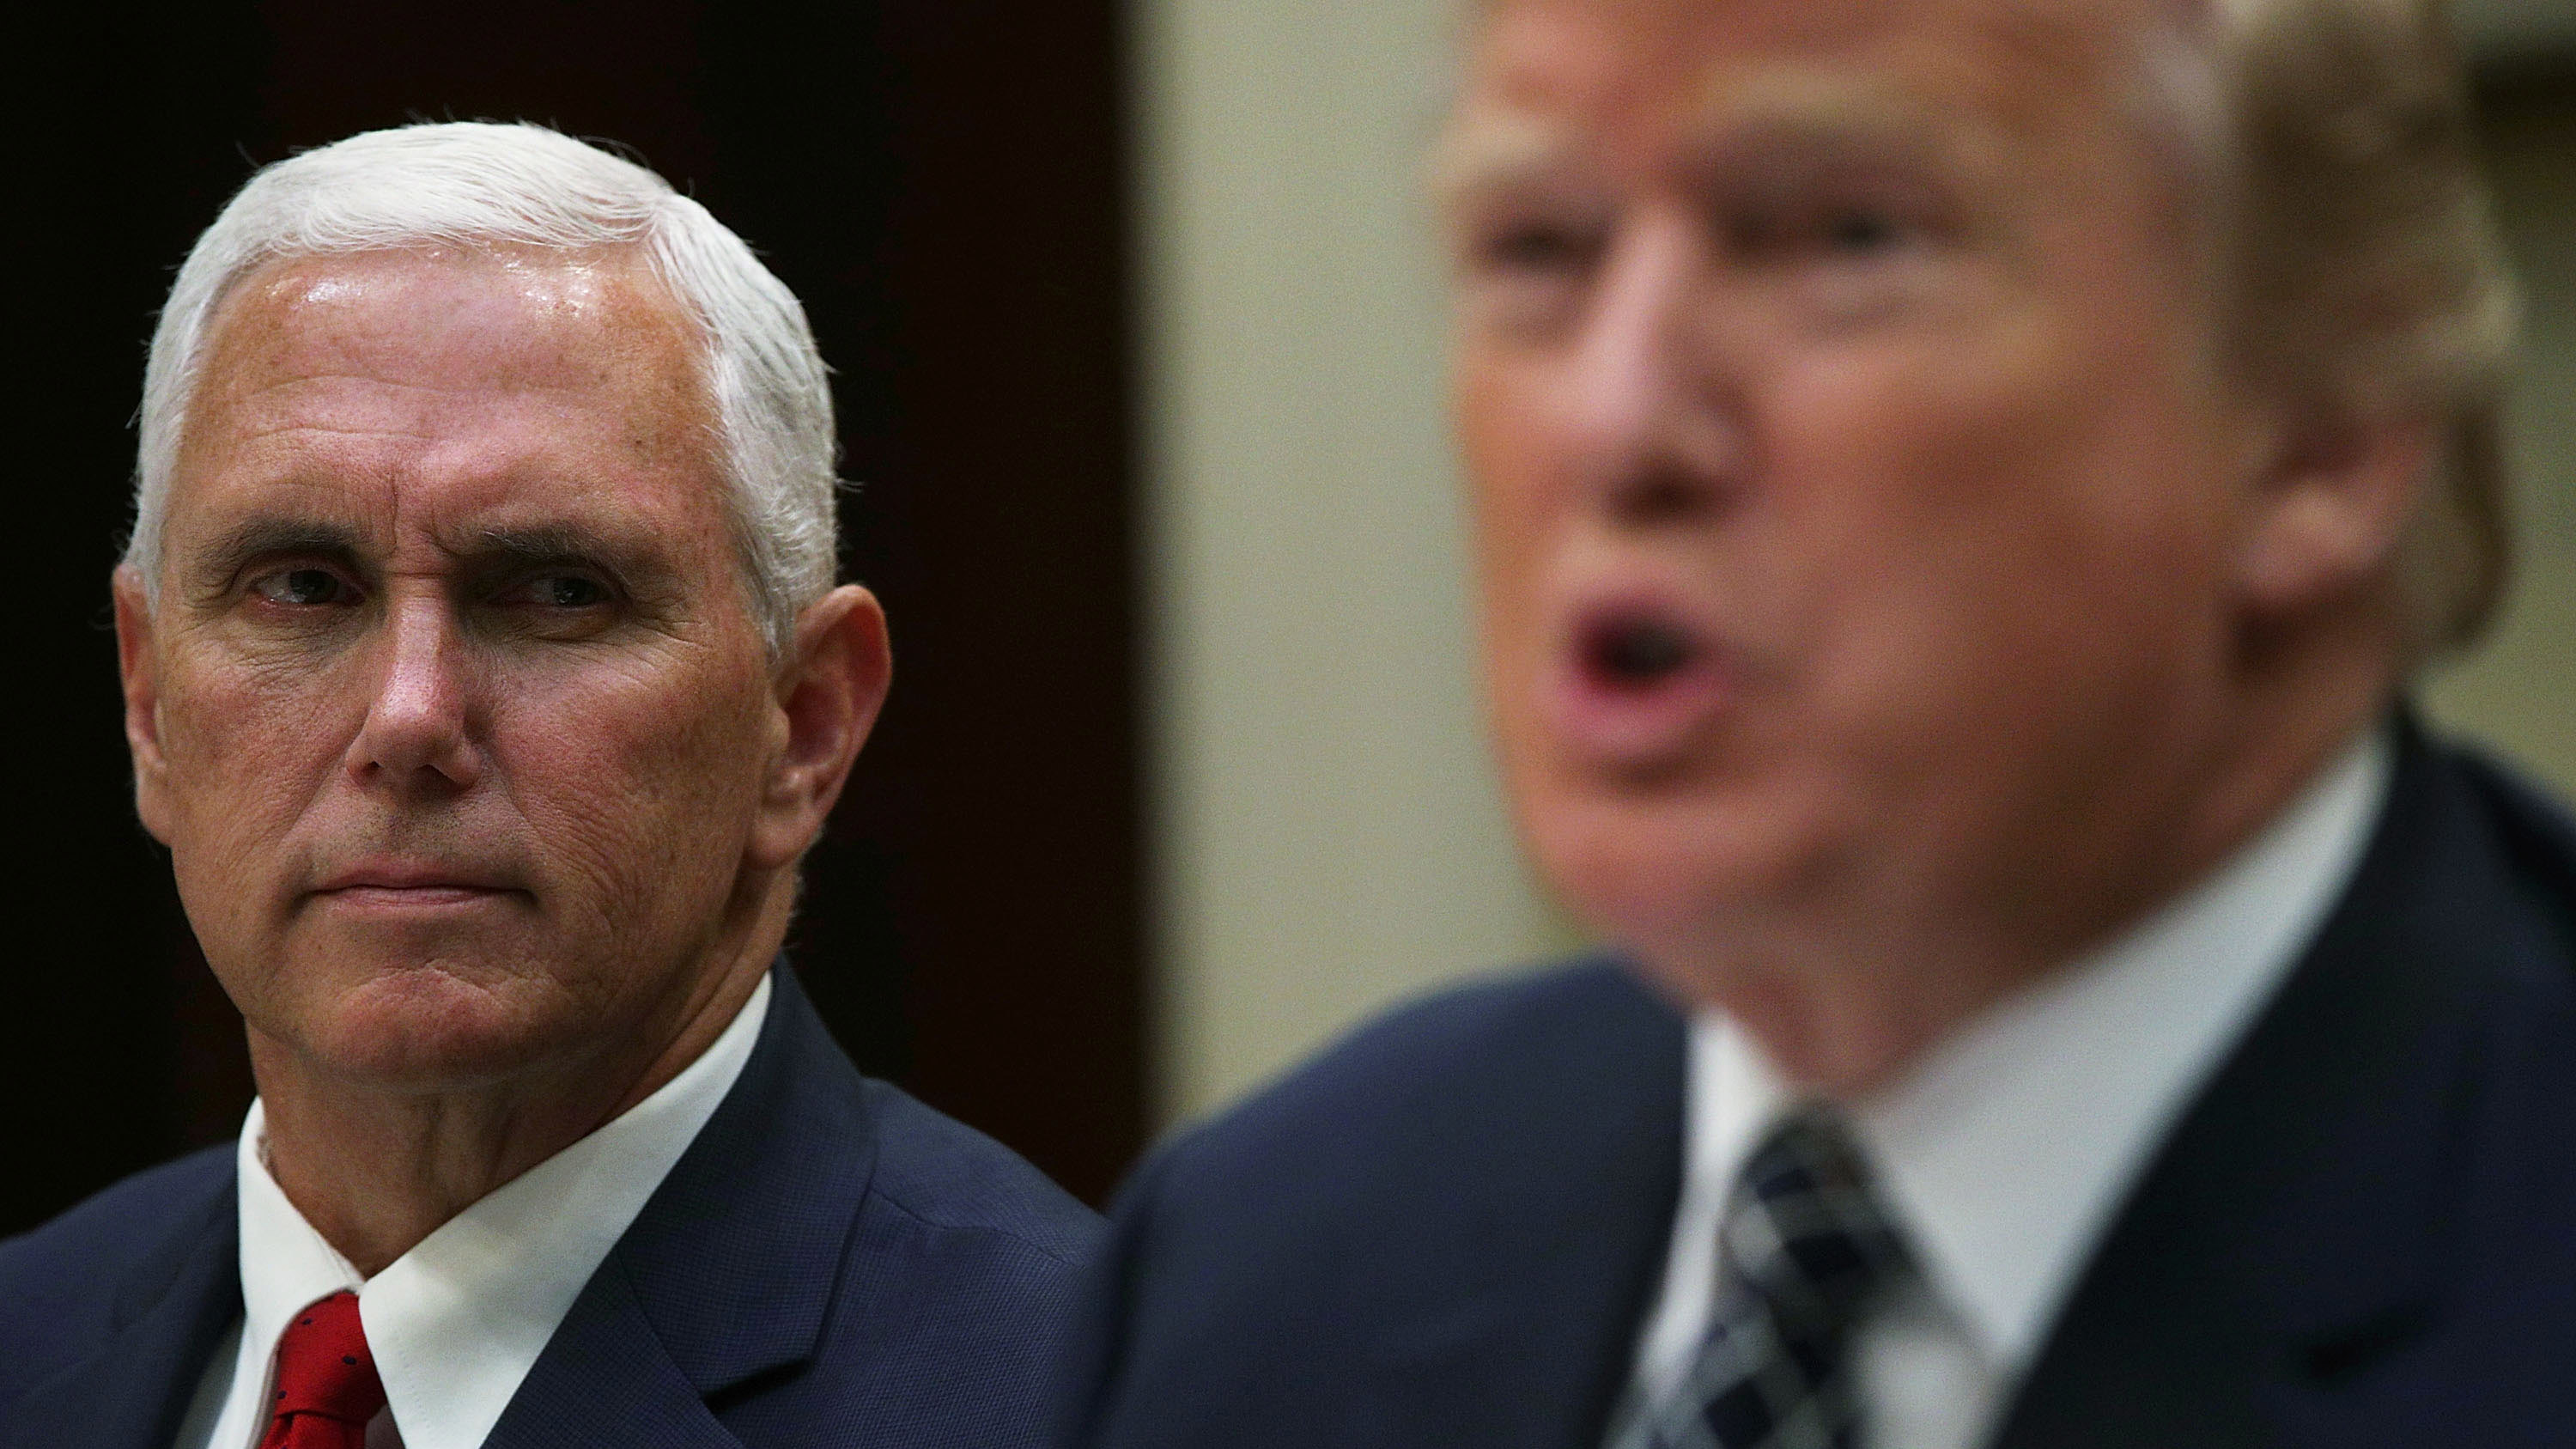 Vice President Mike Pence listens as President Donald Trump speaks to members of the media during an event at the White House on July 18, 2017.